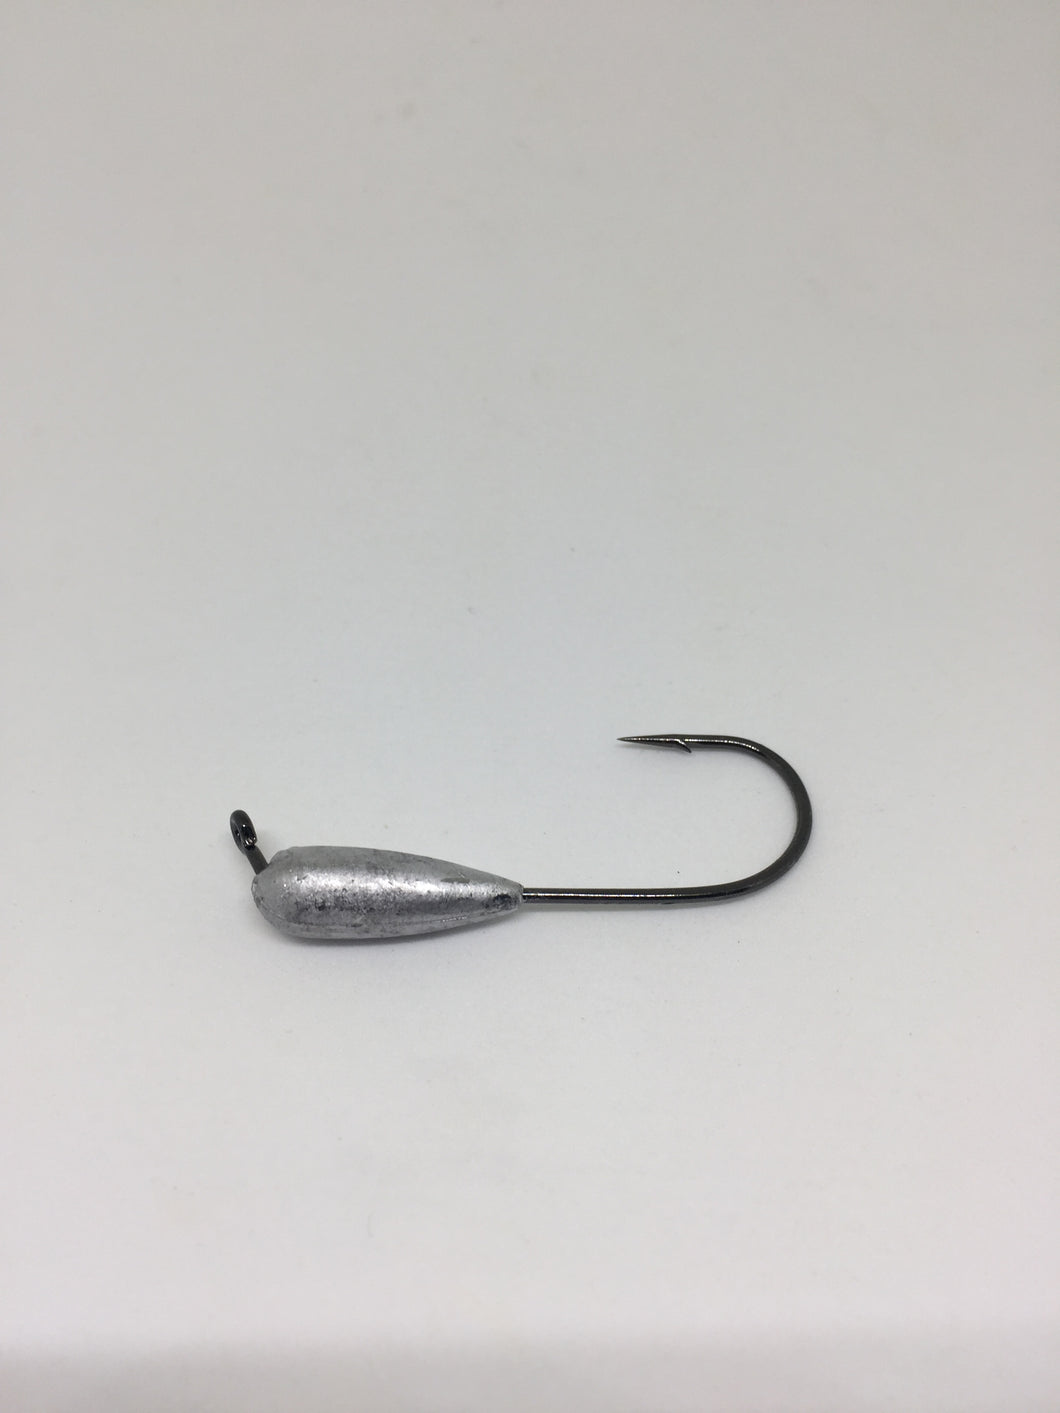 Lunch Money Tube Jig